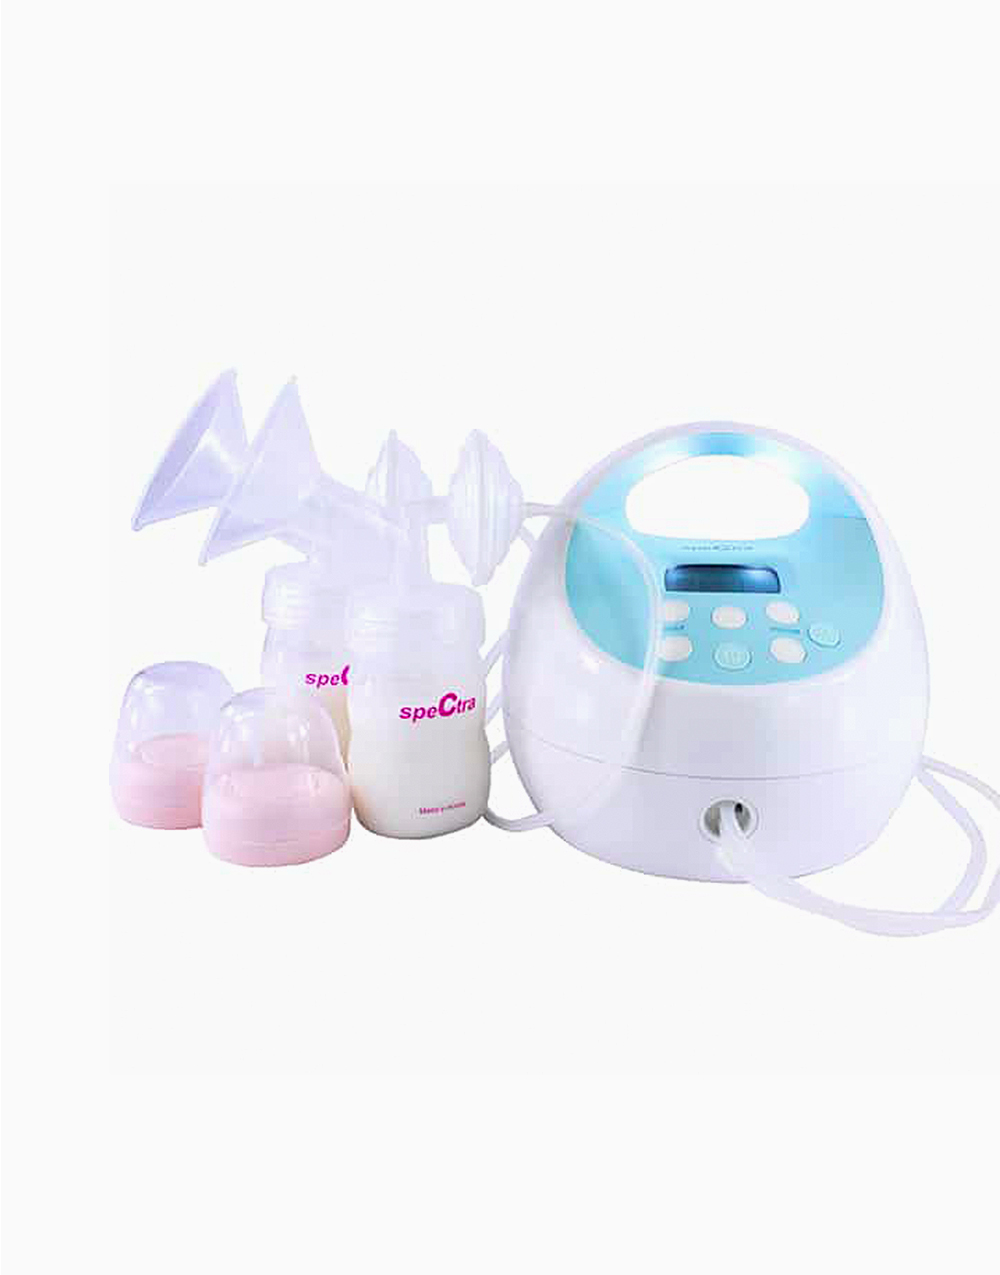 S1 Hospital Grade Double Electric Breast Pump - Rechargeable by Spectra |